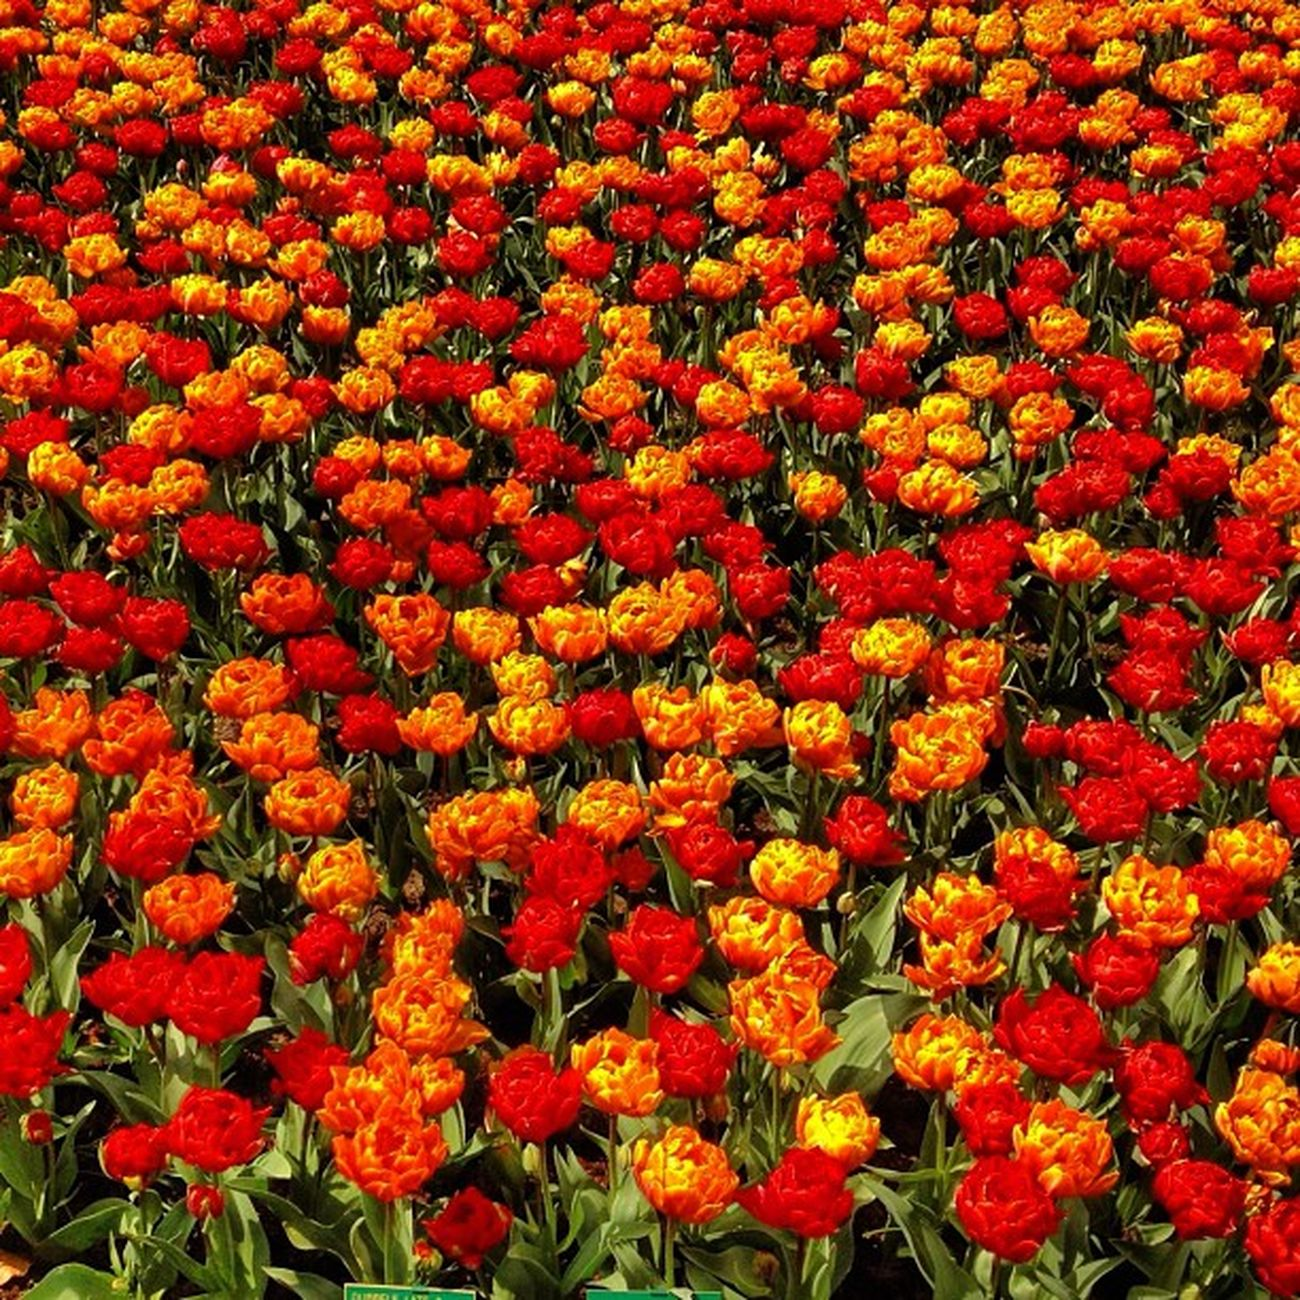 Orange #flowers for #altexpo #orange #dutch #jj_forum #igersholland #holland #ubiquography #jj altexpo Tulipfieldsexperience Flowers Holland Orange Dutch Jj  Jj_forum Altexpo Ubiquography Igersholland Theflowerofgardens